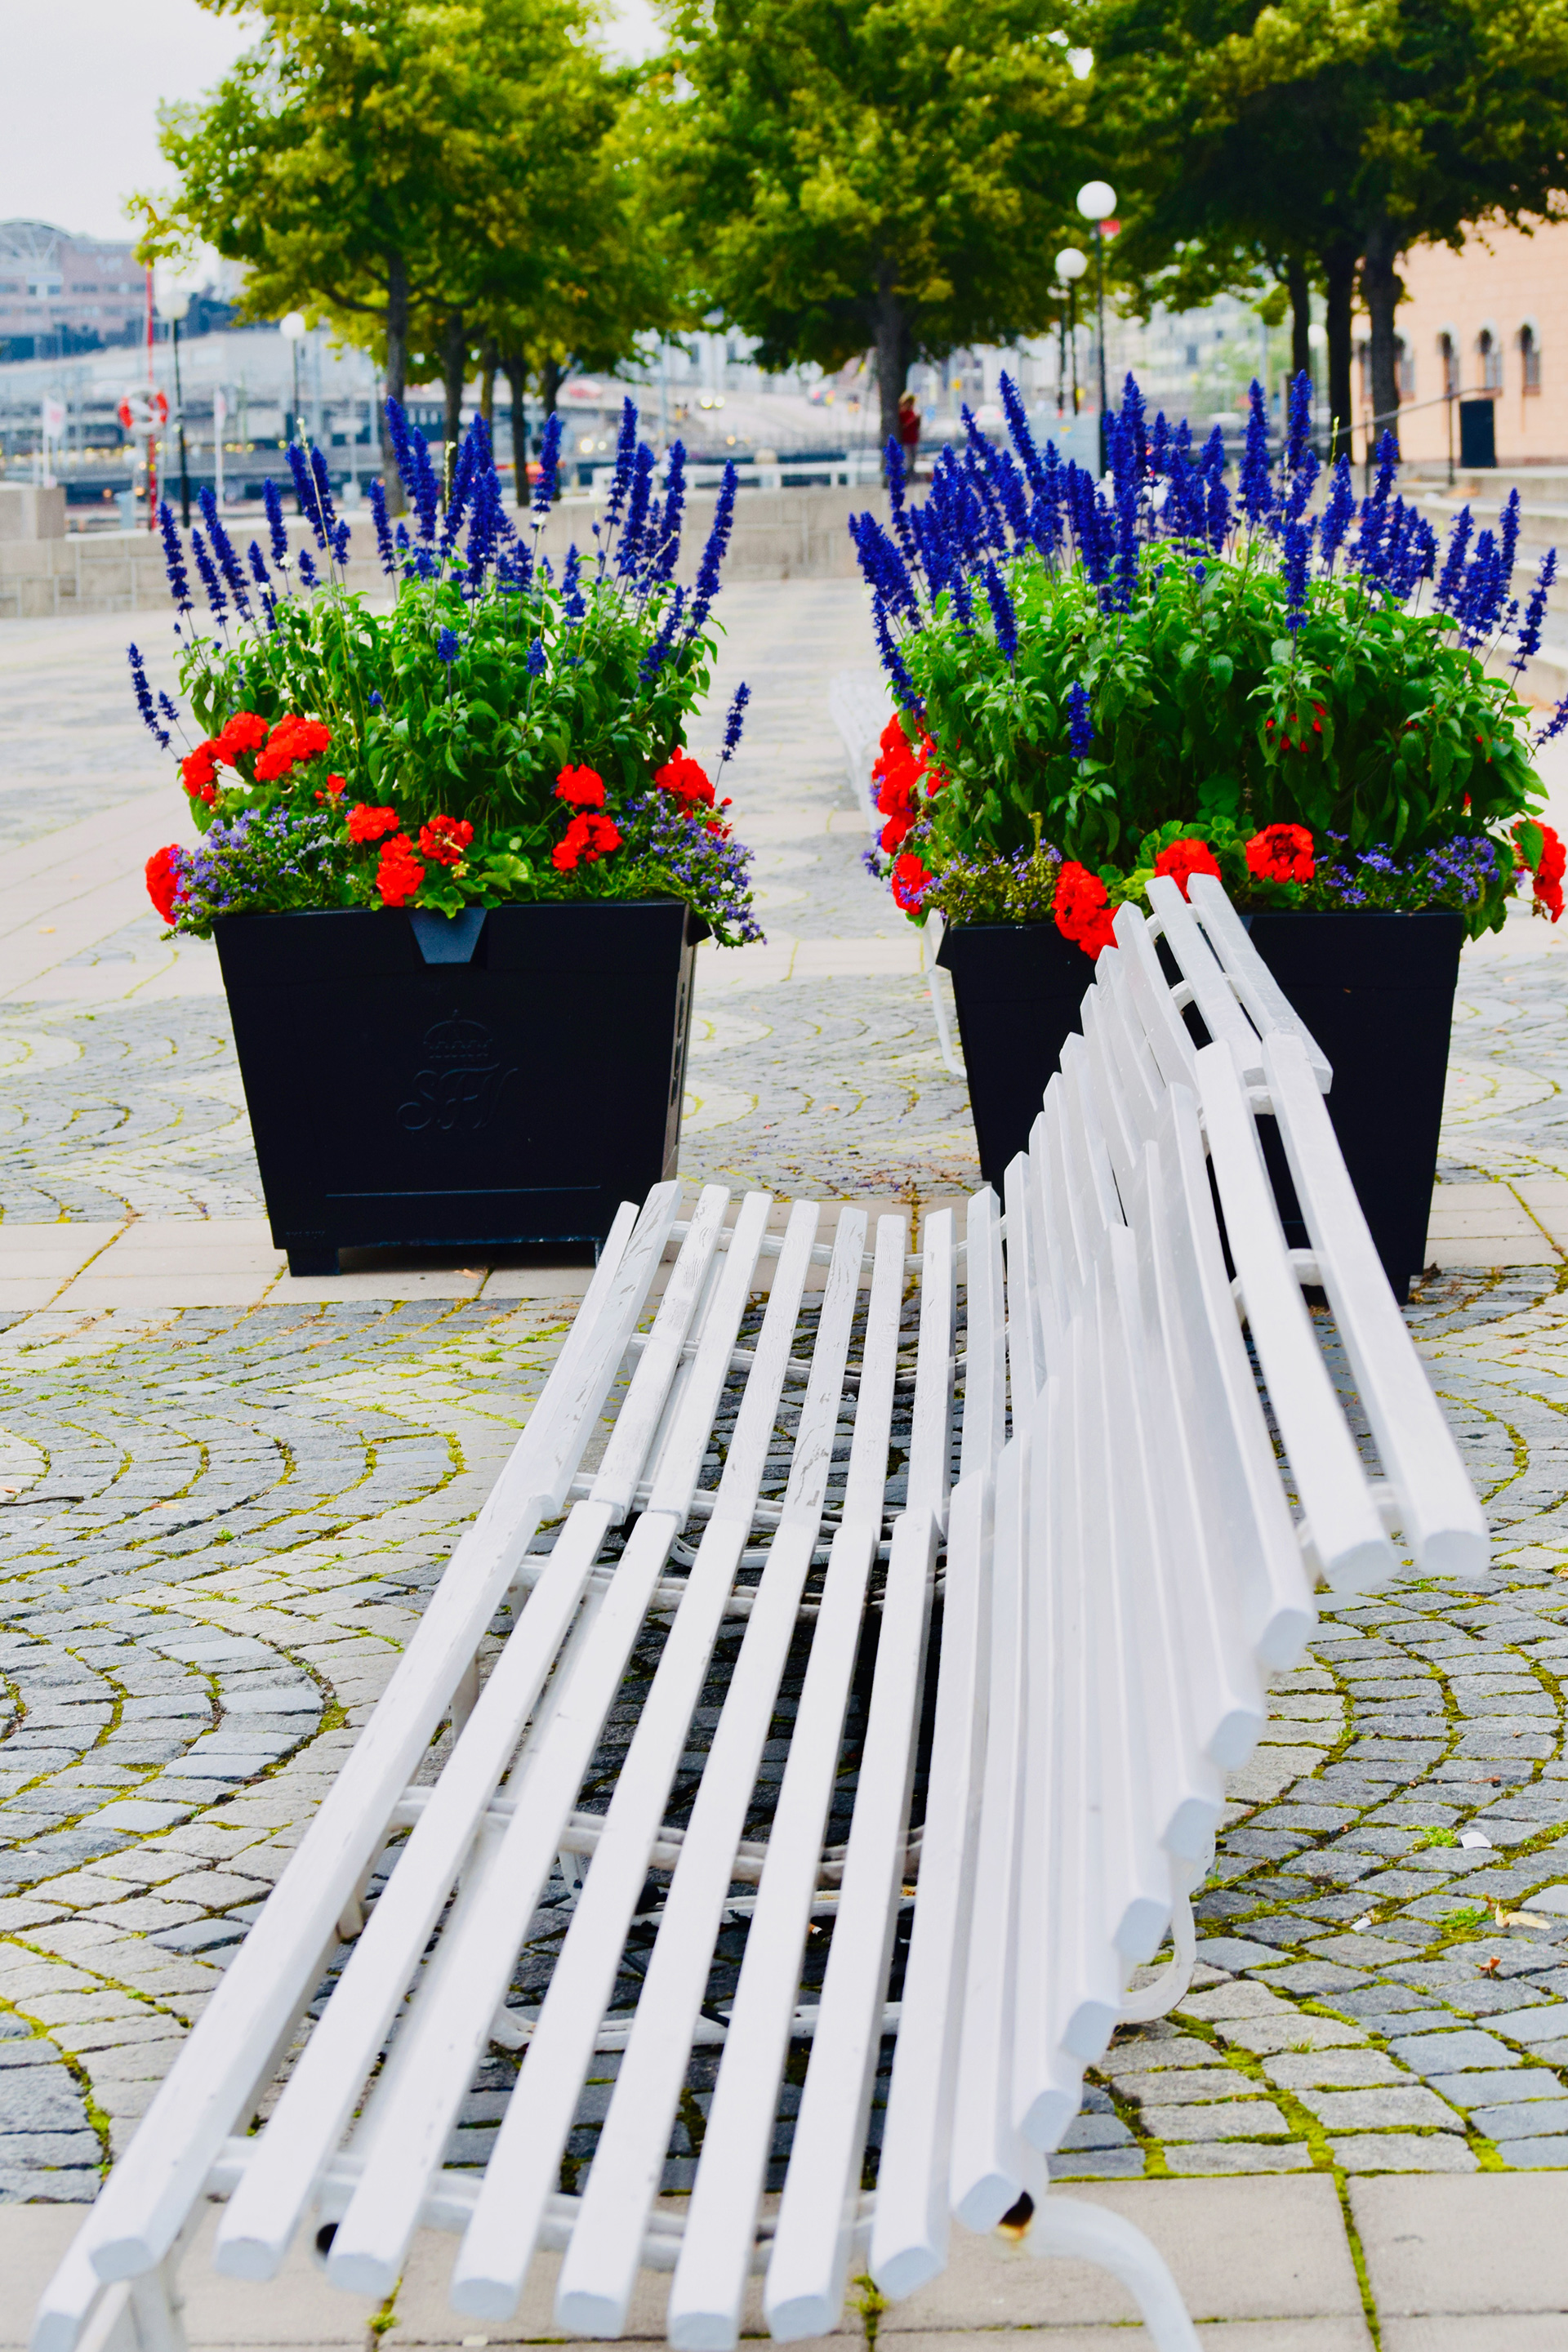 Blooms and benches along the city's many promenades | Helsinki | Finland| STIRworld